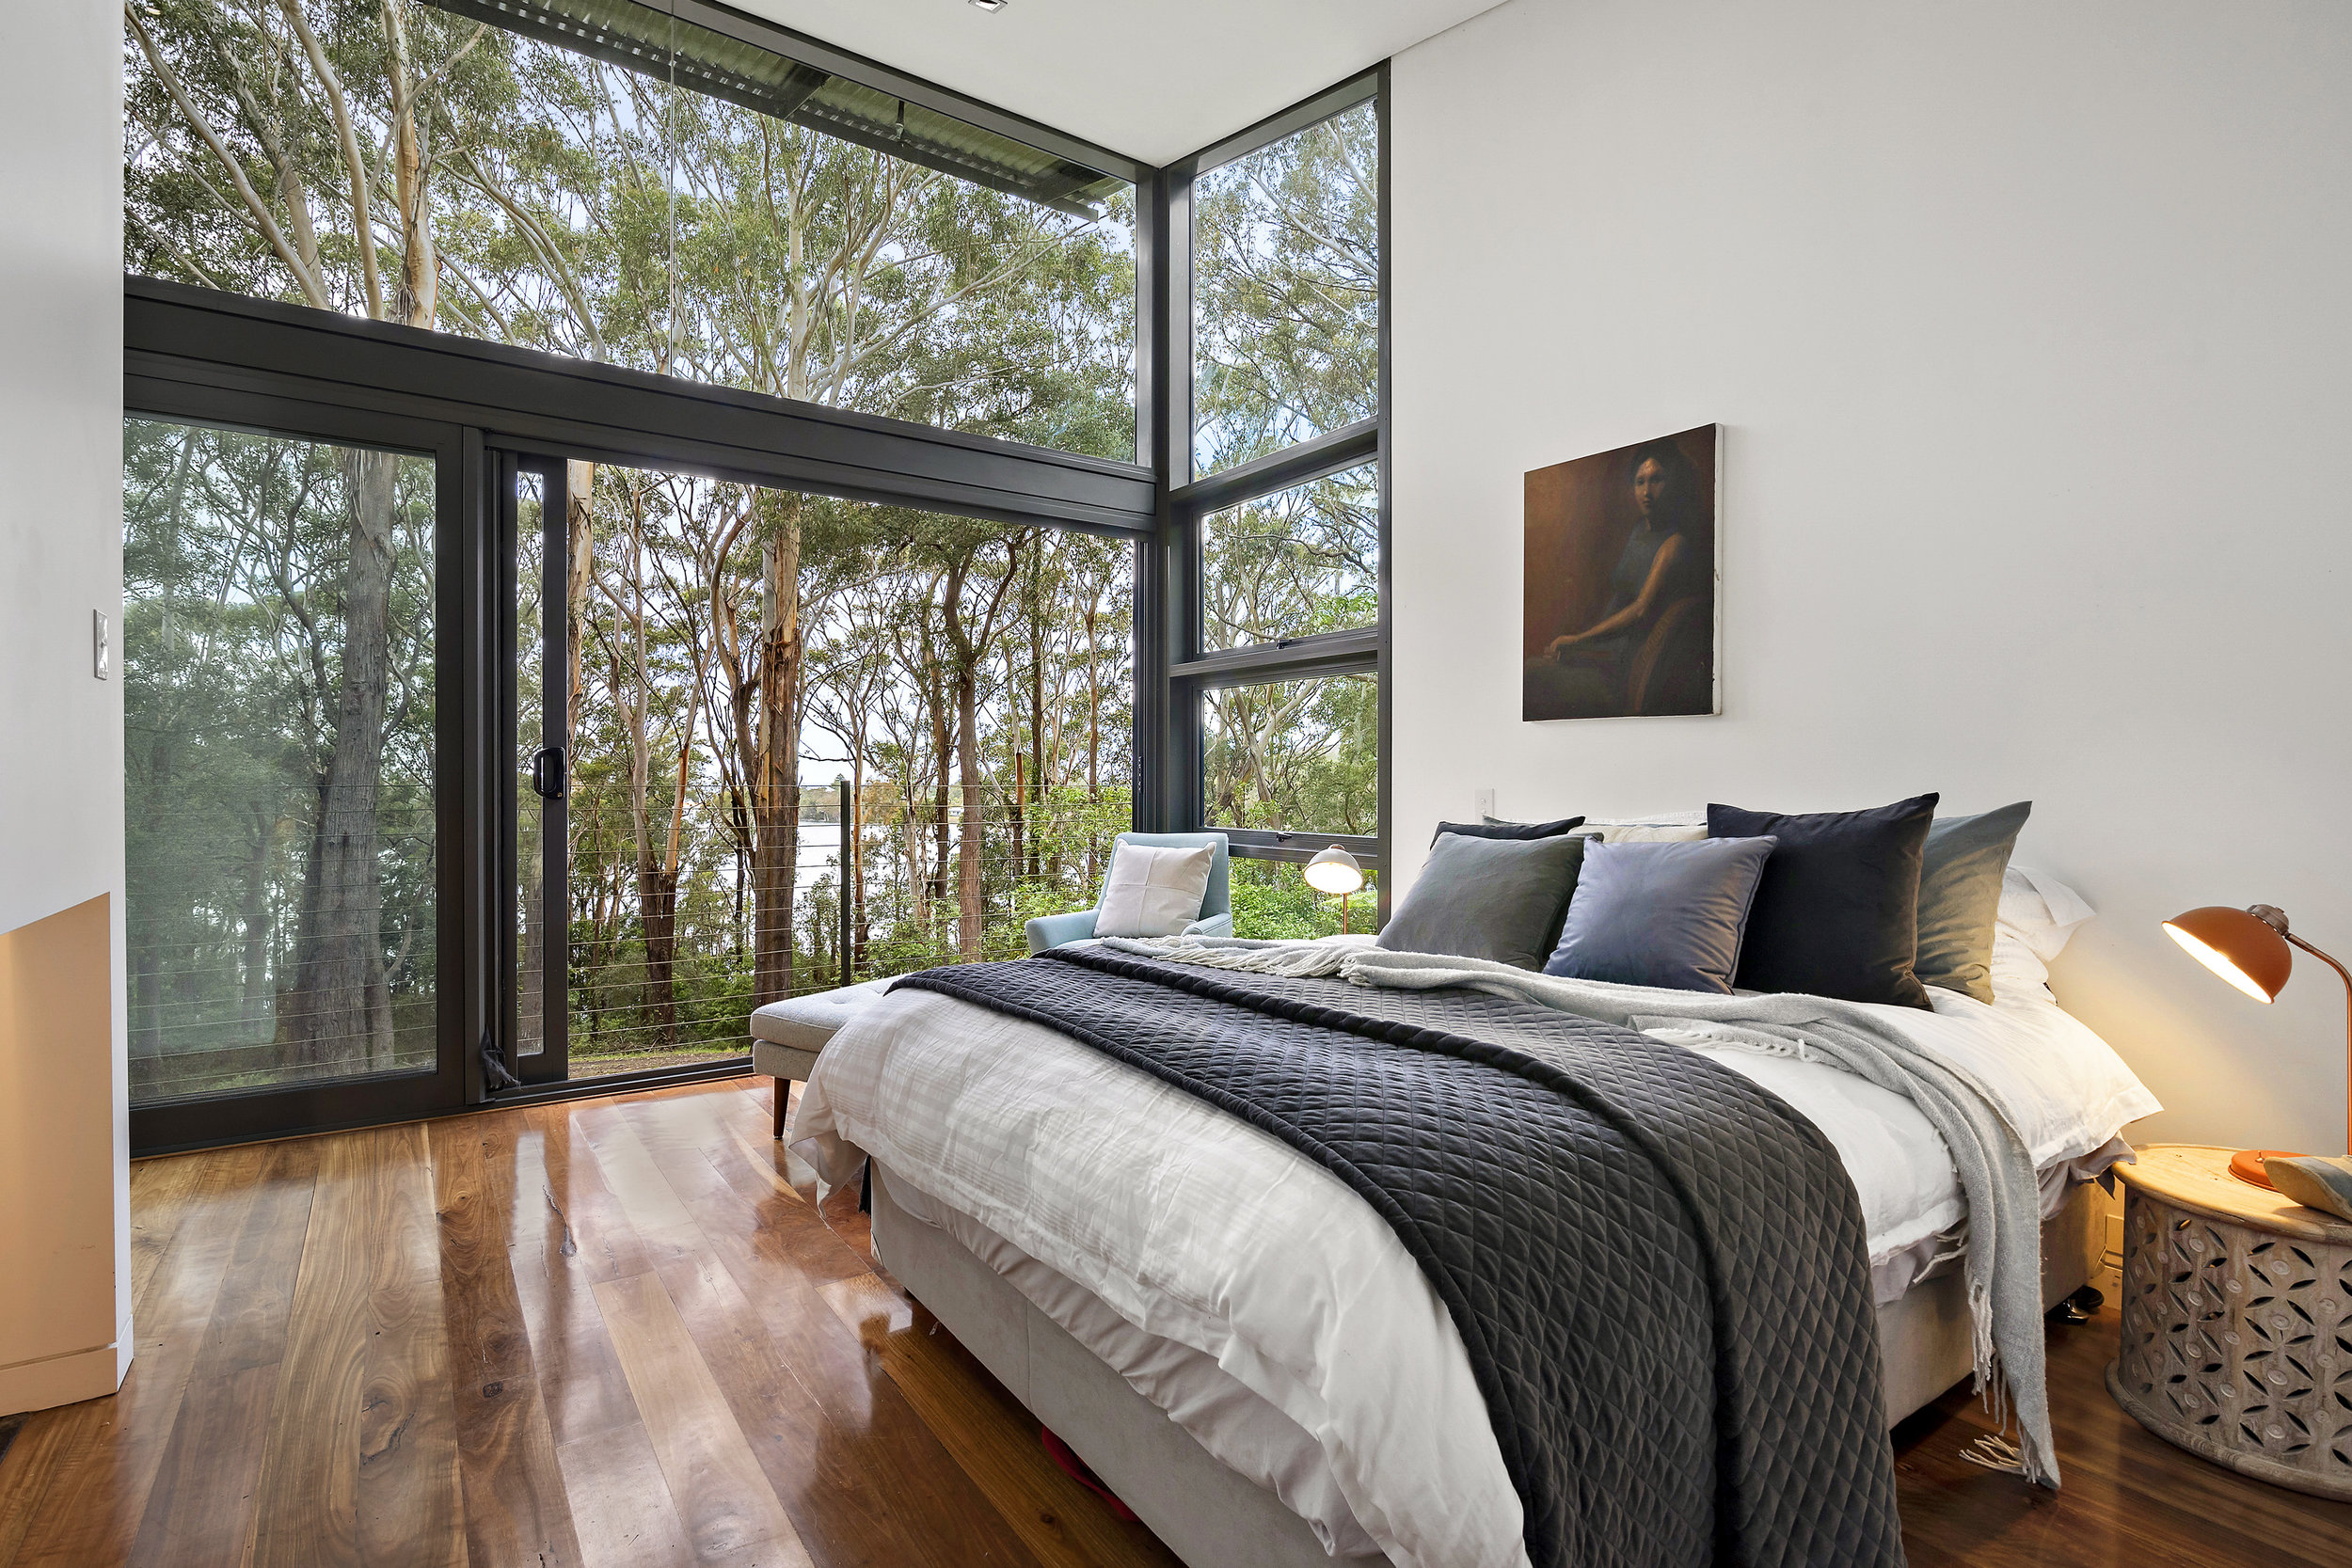 636 The Scenic Road, Macmasters Beach